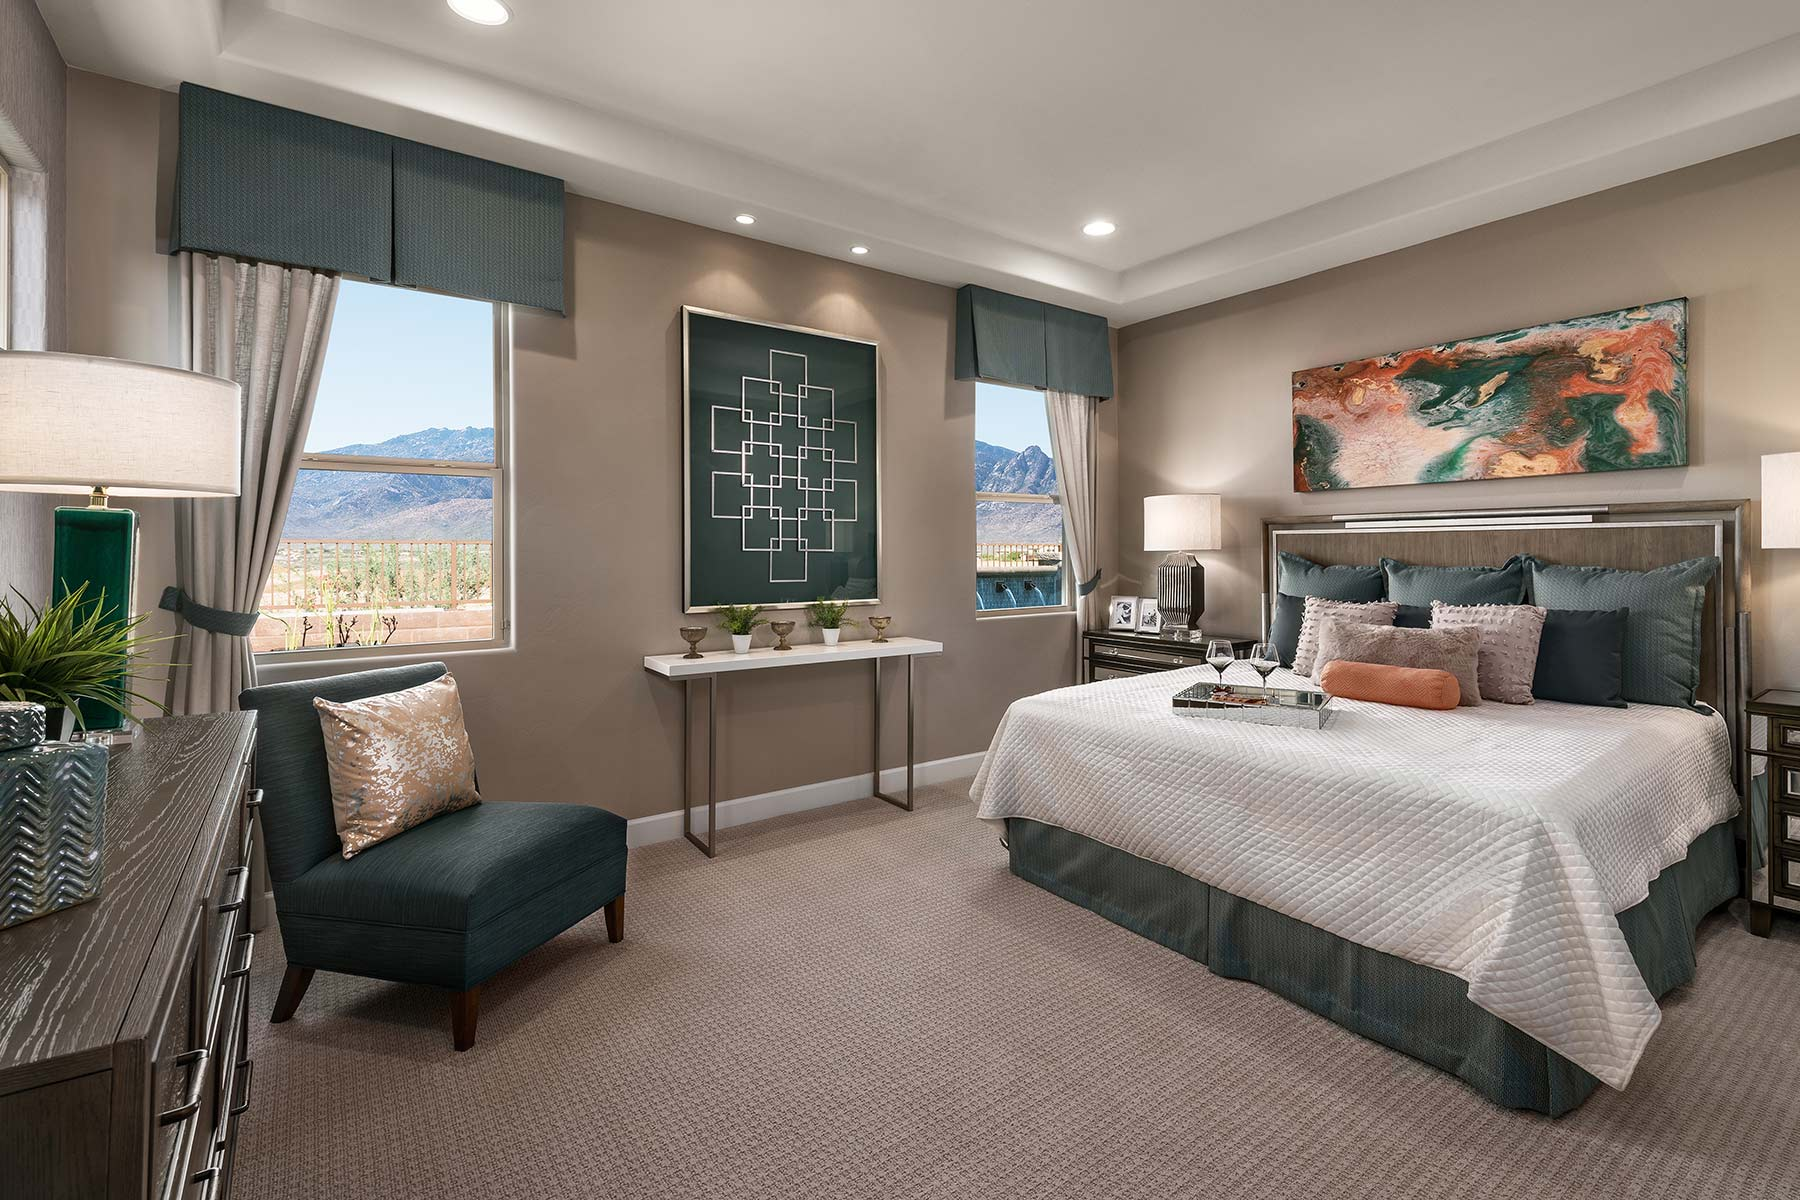 Strata Plan Bedroom at Alterra at Vistoso Trails in Oro Valley Arizona by Mattamy Homes